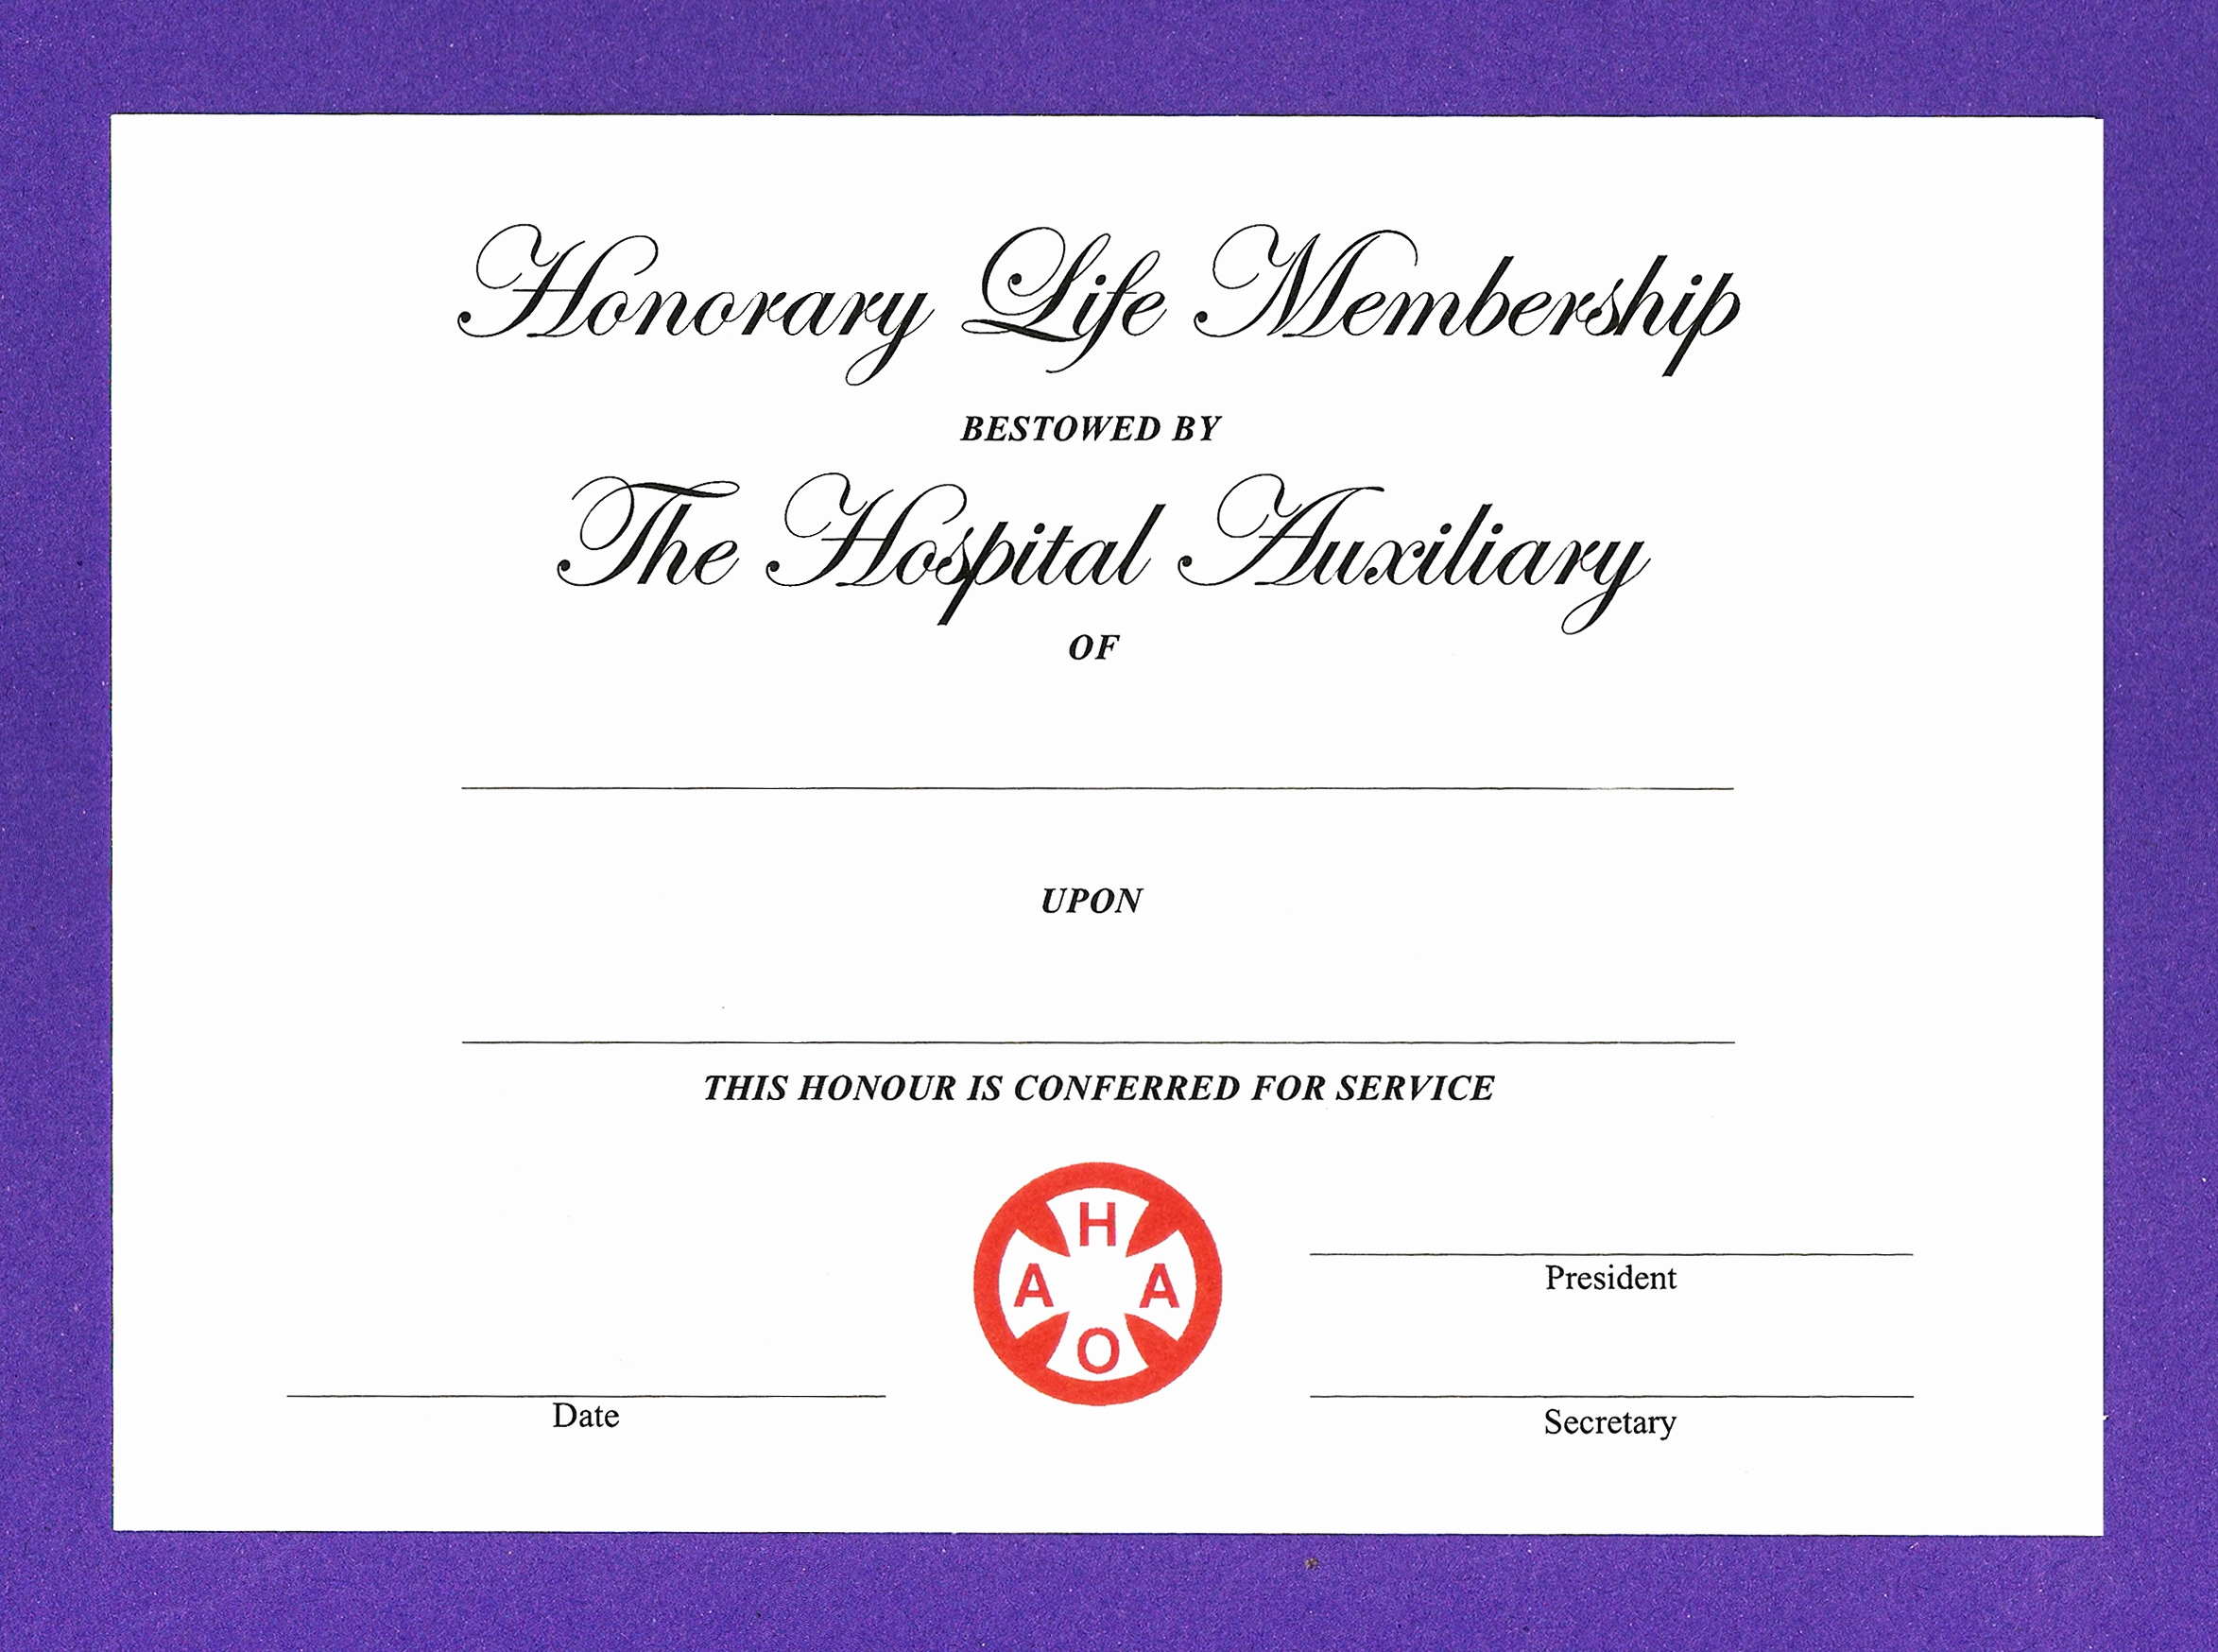 Honorary Member Certificate Template Inspirational 14 Honorary Life Certificate Templates Pdf Docx